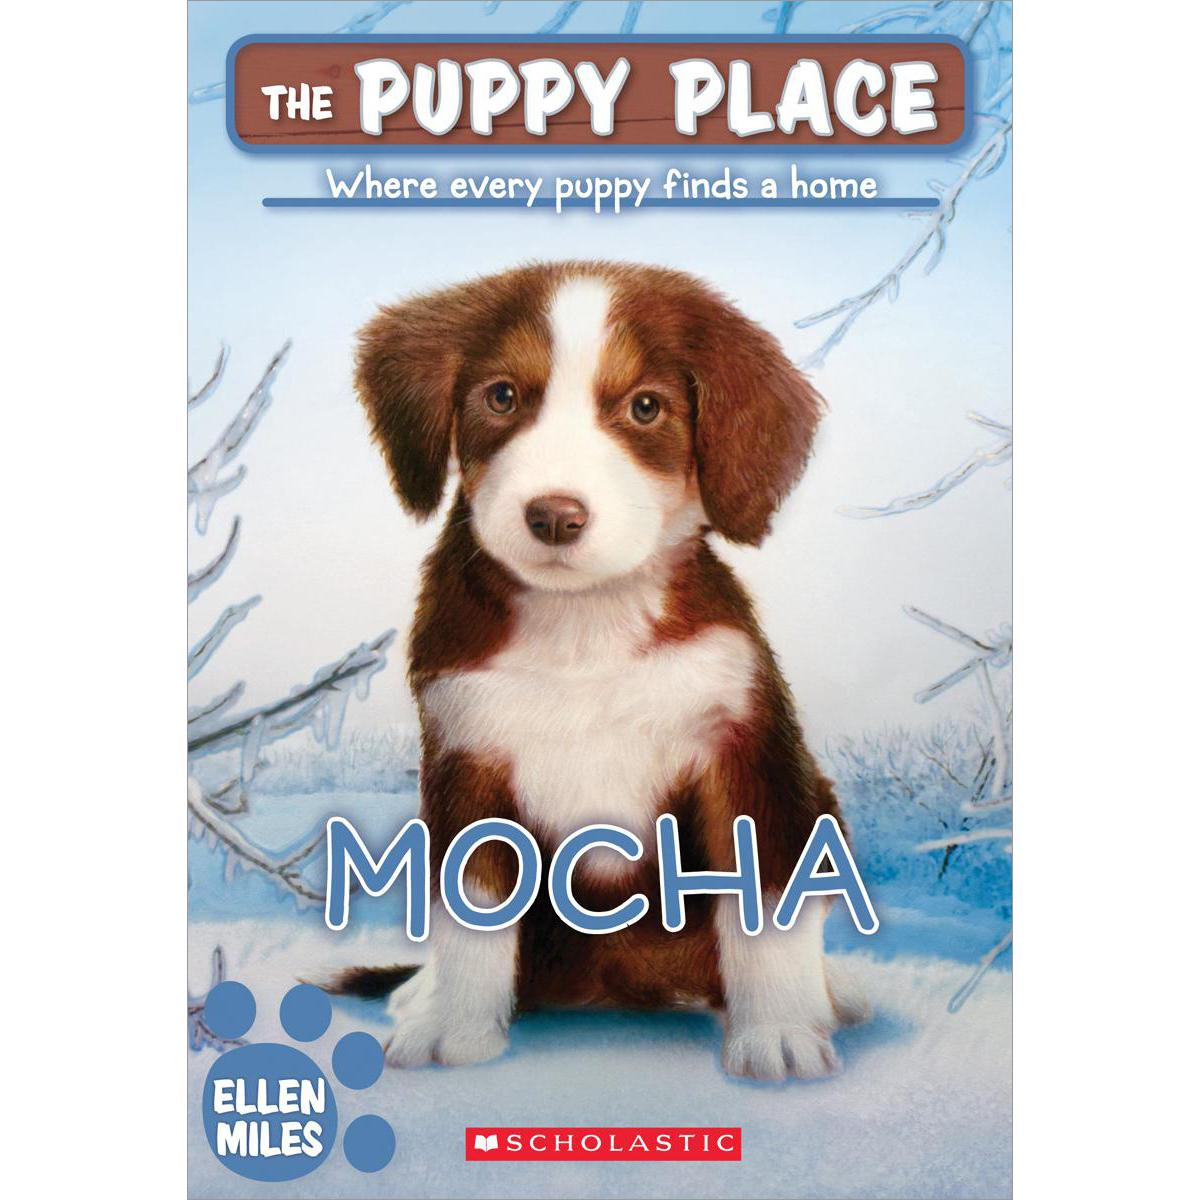 The Puppy Place: Mocha